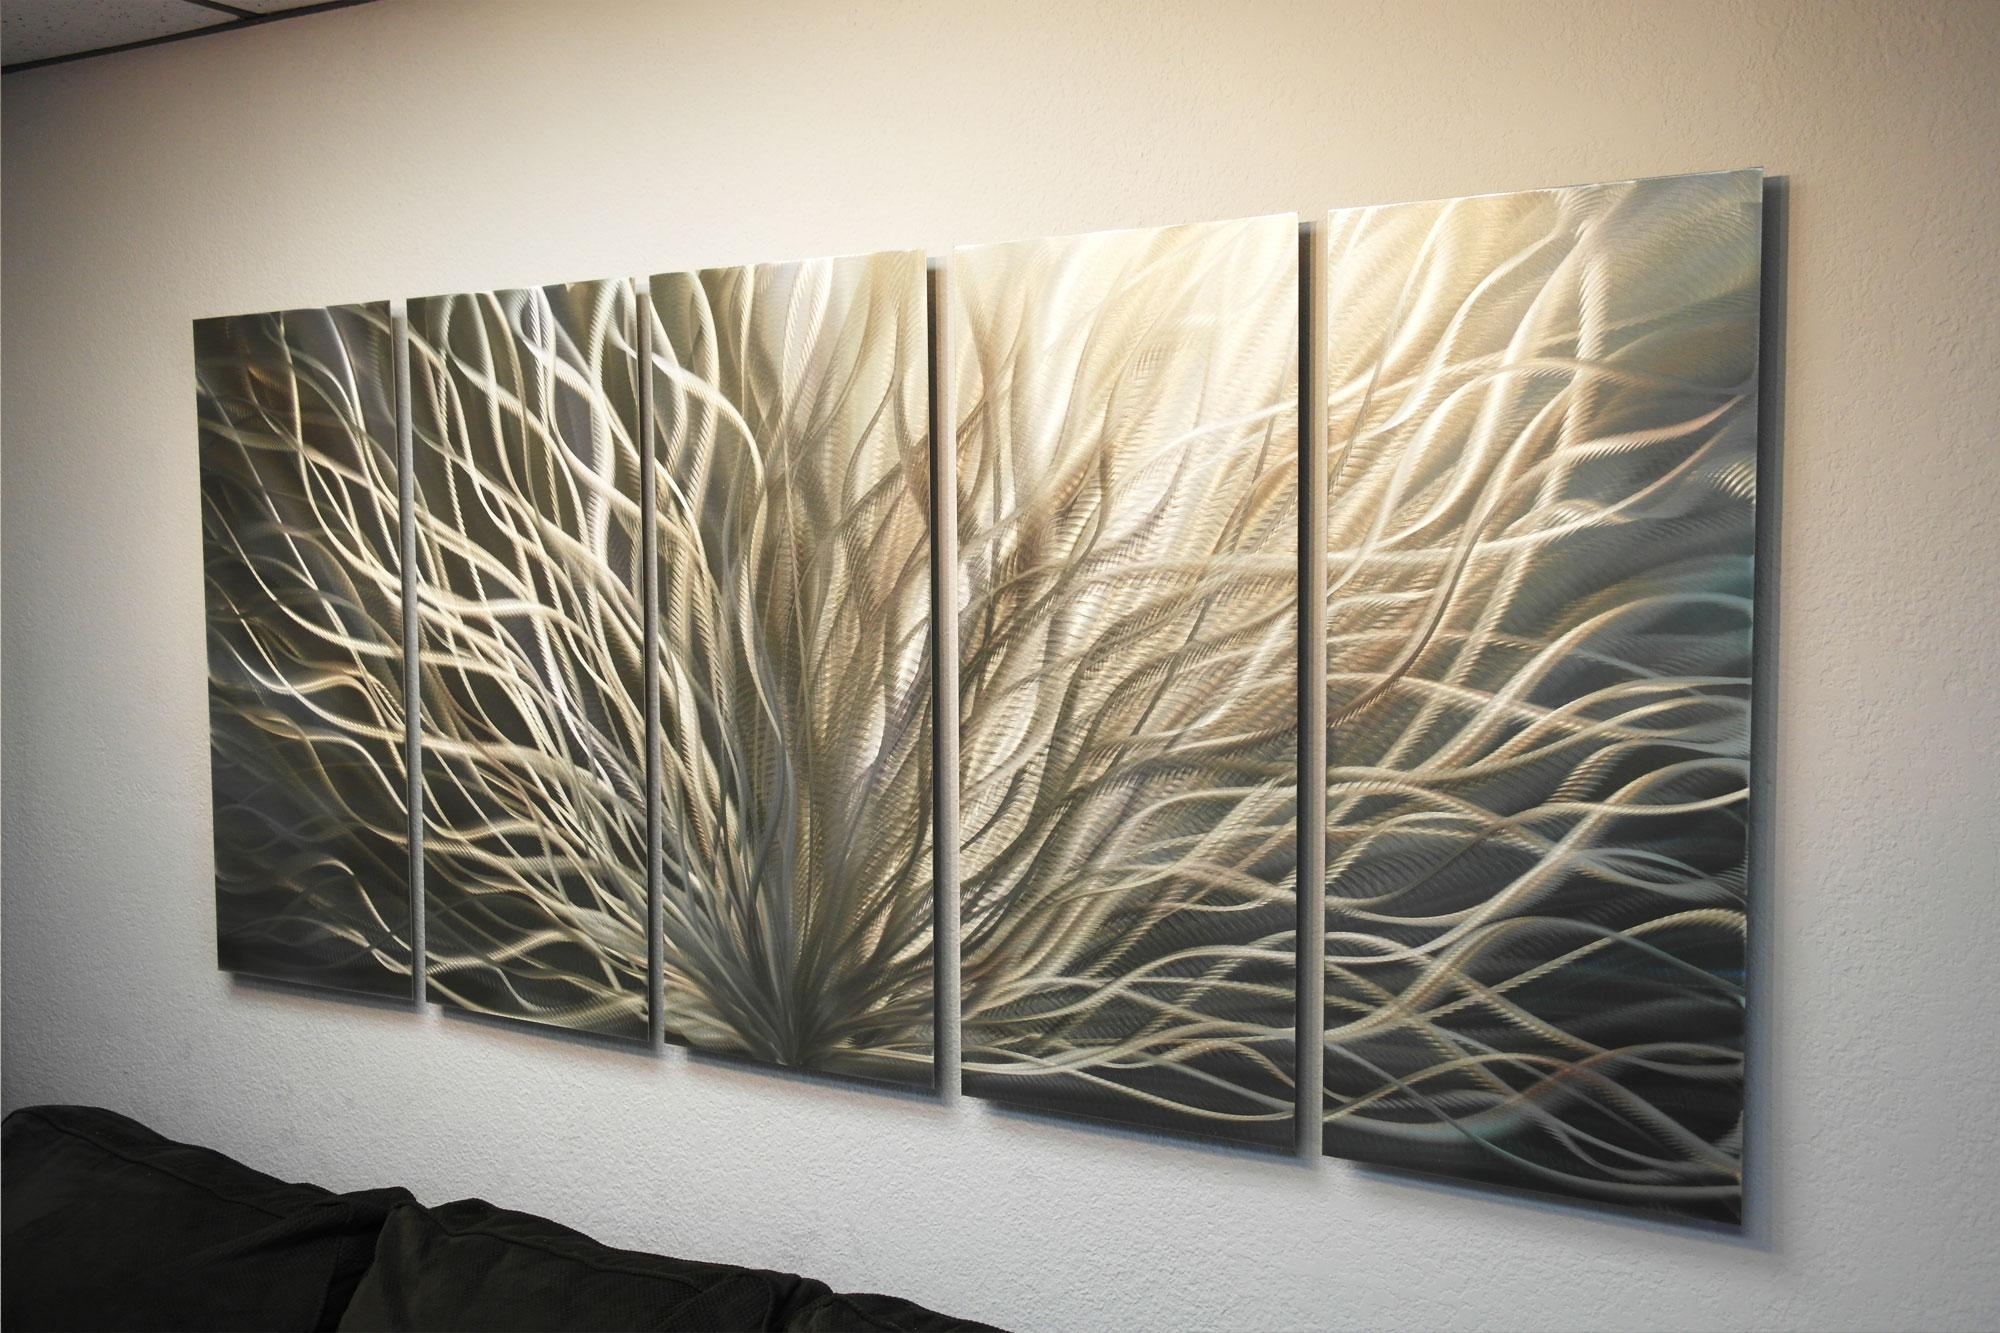 Radiance Gold Silver 36X79 – Metal Wall Art Abstract Sculpture Within Silver And Gold Wall Art (View 4 of 20)